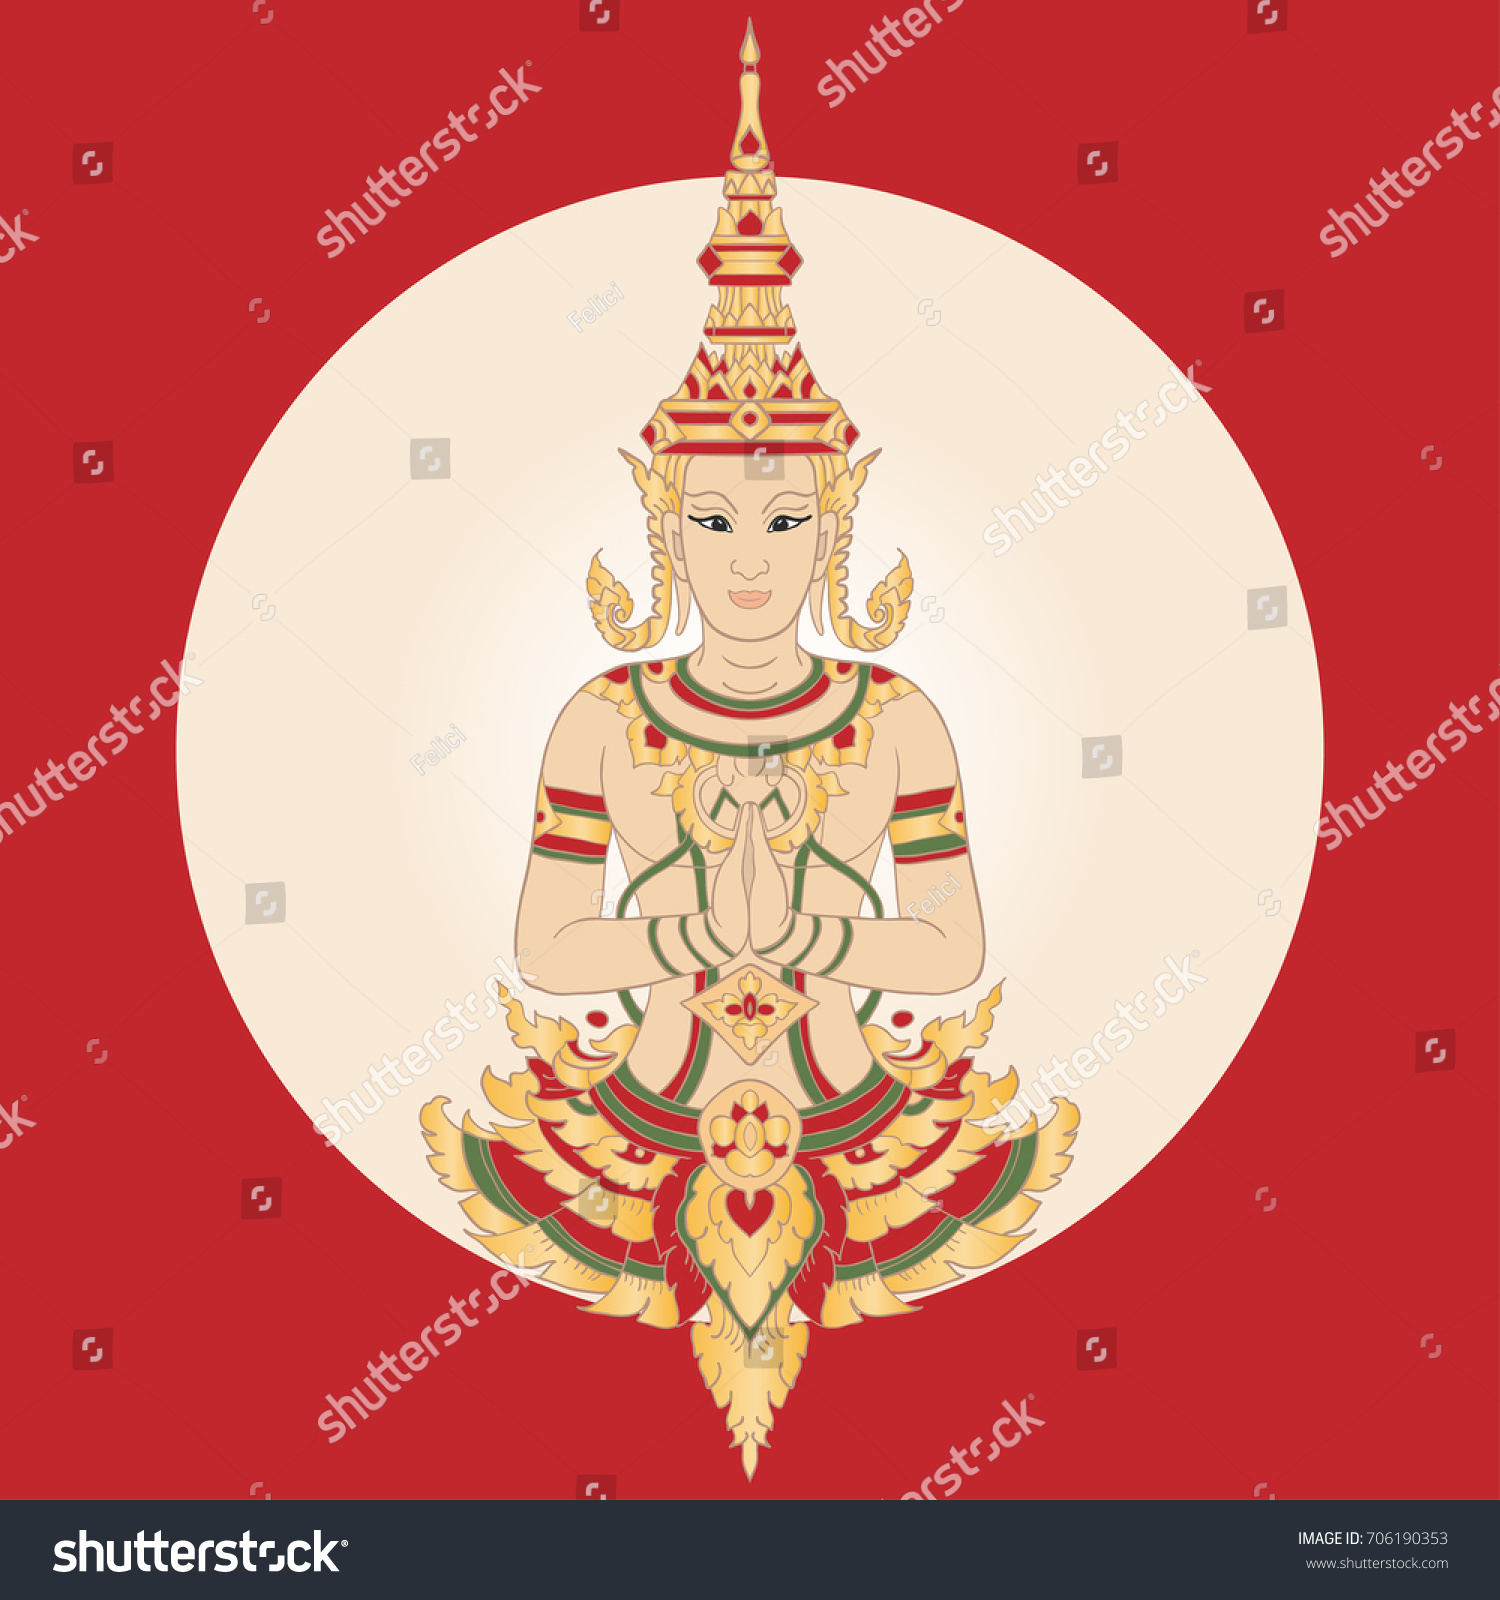 Thailand greeting card traditional thai ornament stock vector thailand greeting card traditional thai ornament with golden red elements yellow gradient background kristyandbryce Images